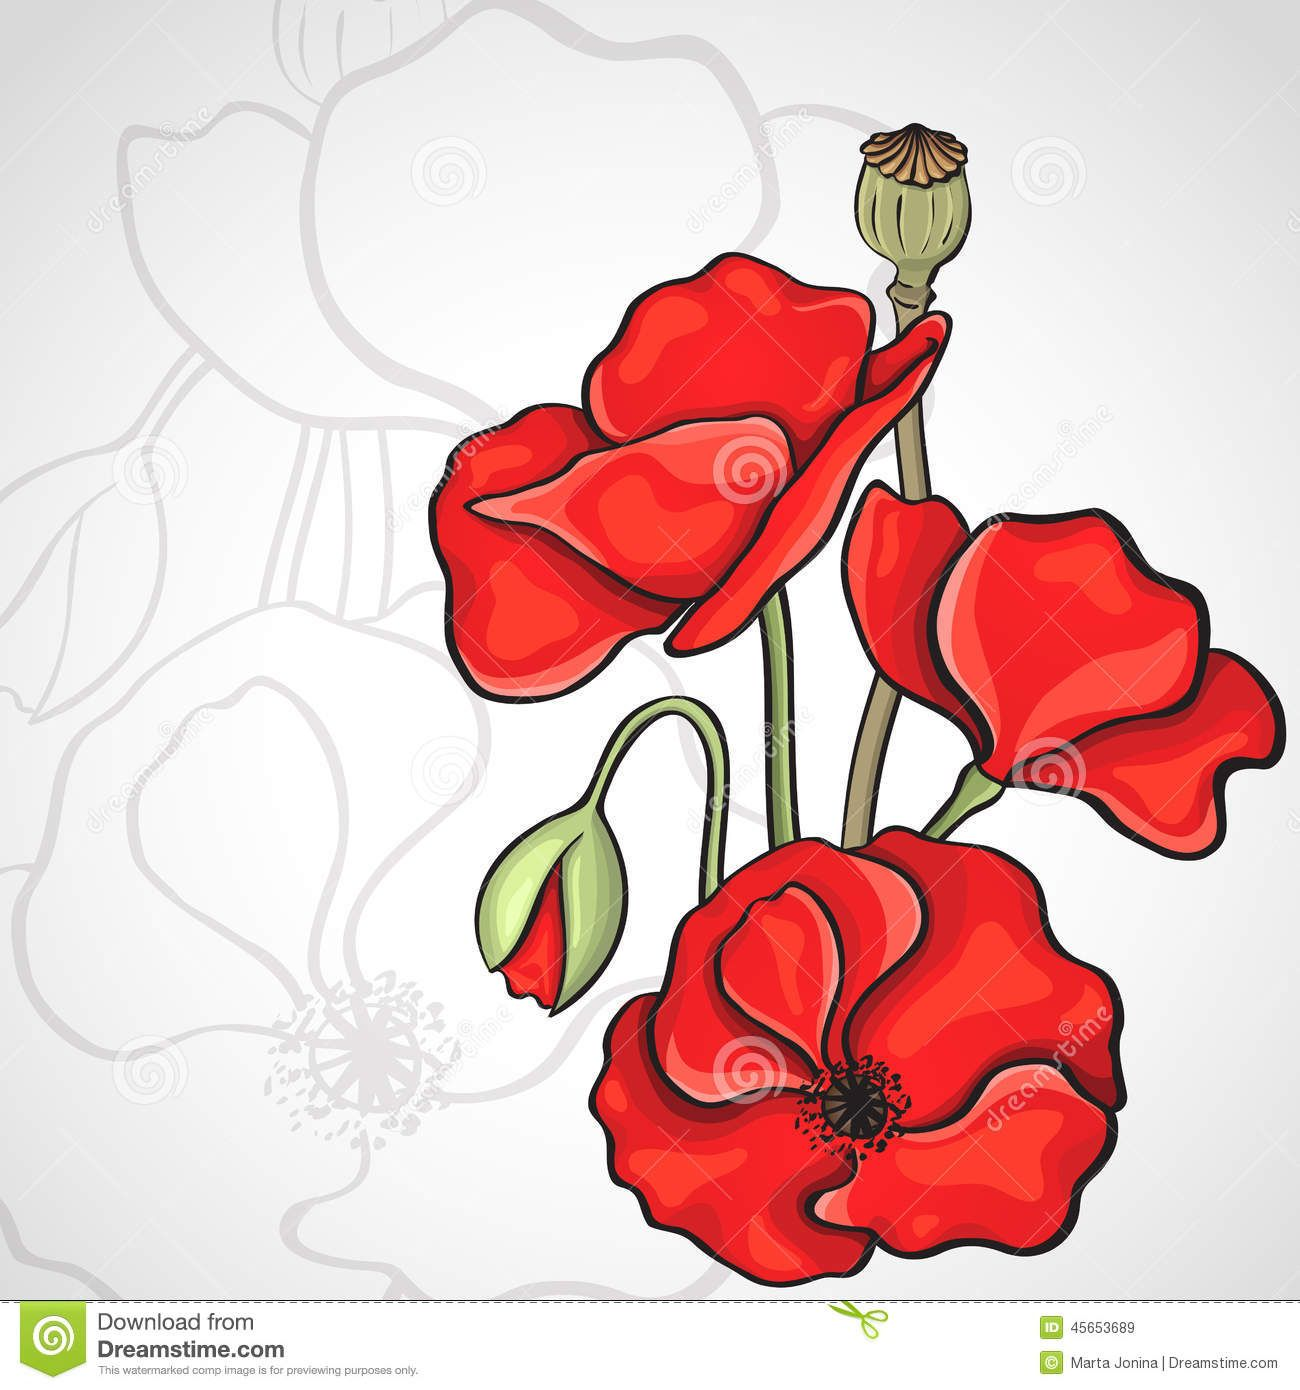 Simple Poppy Drawing at GetDrawings.com | Free for personal use ...